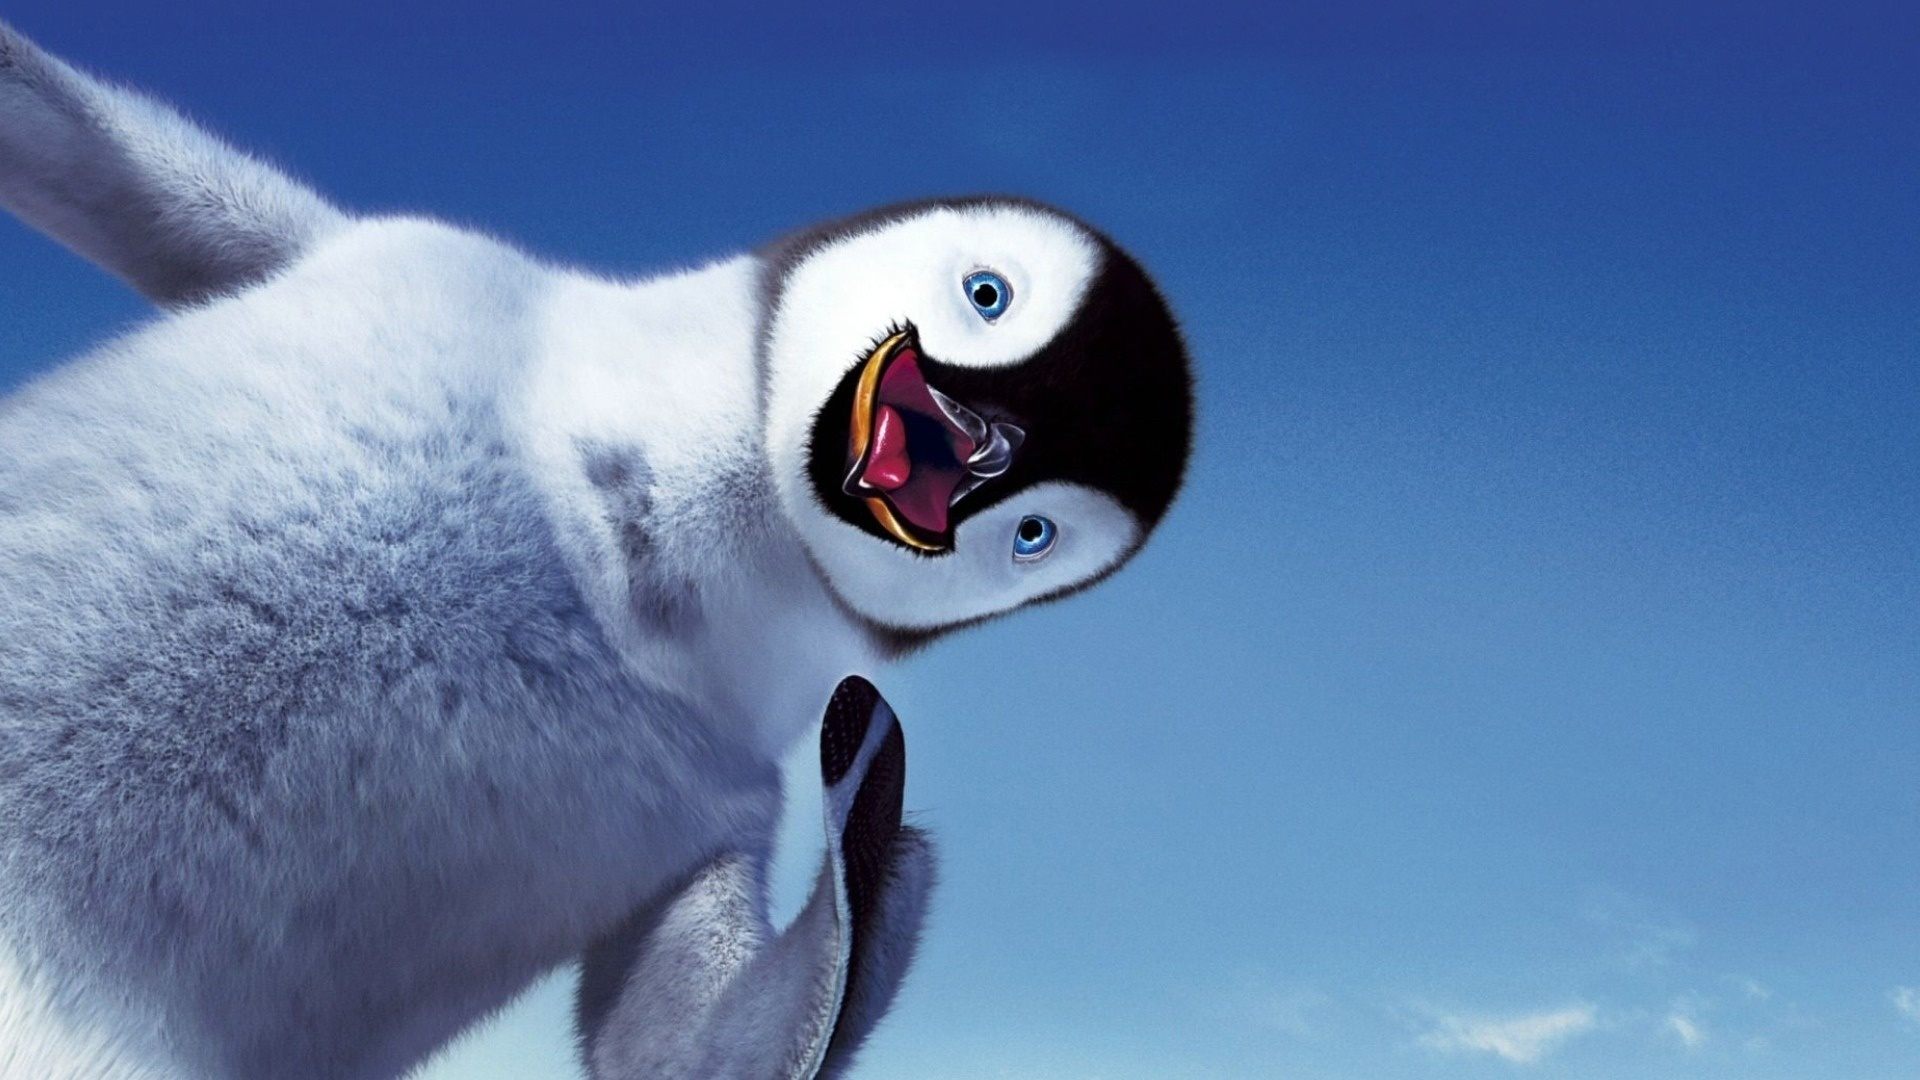 Baby Penguin Desktop Wallpaper - WallpaperSafari